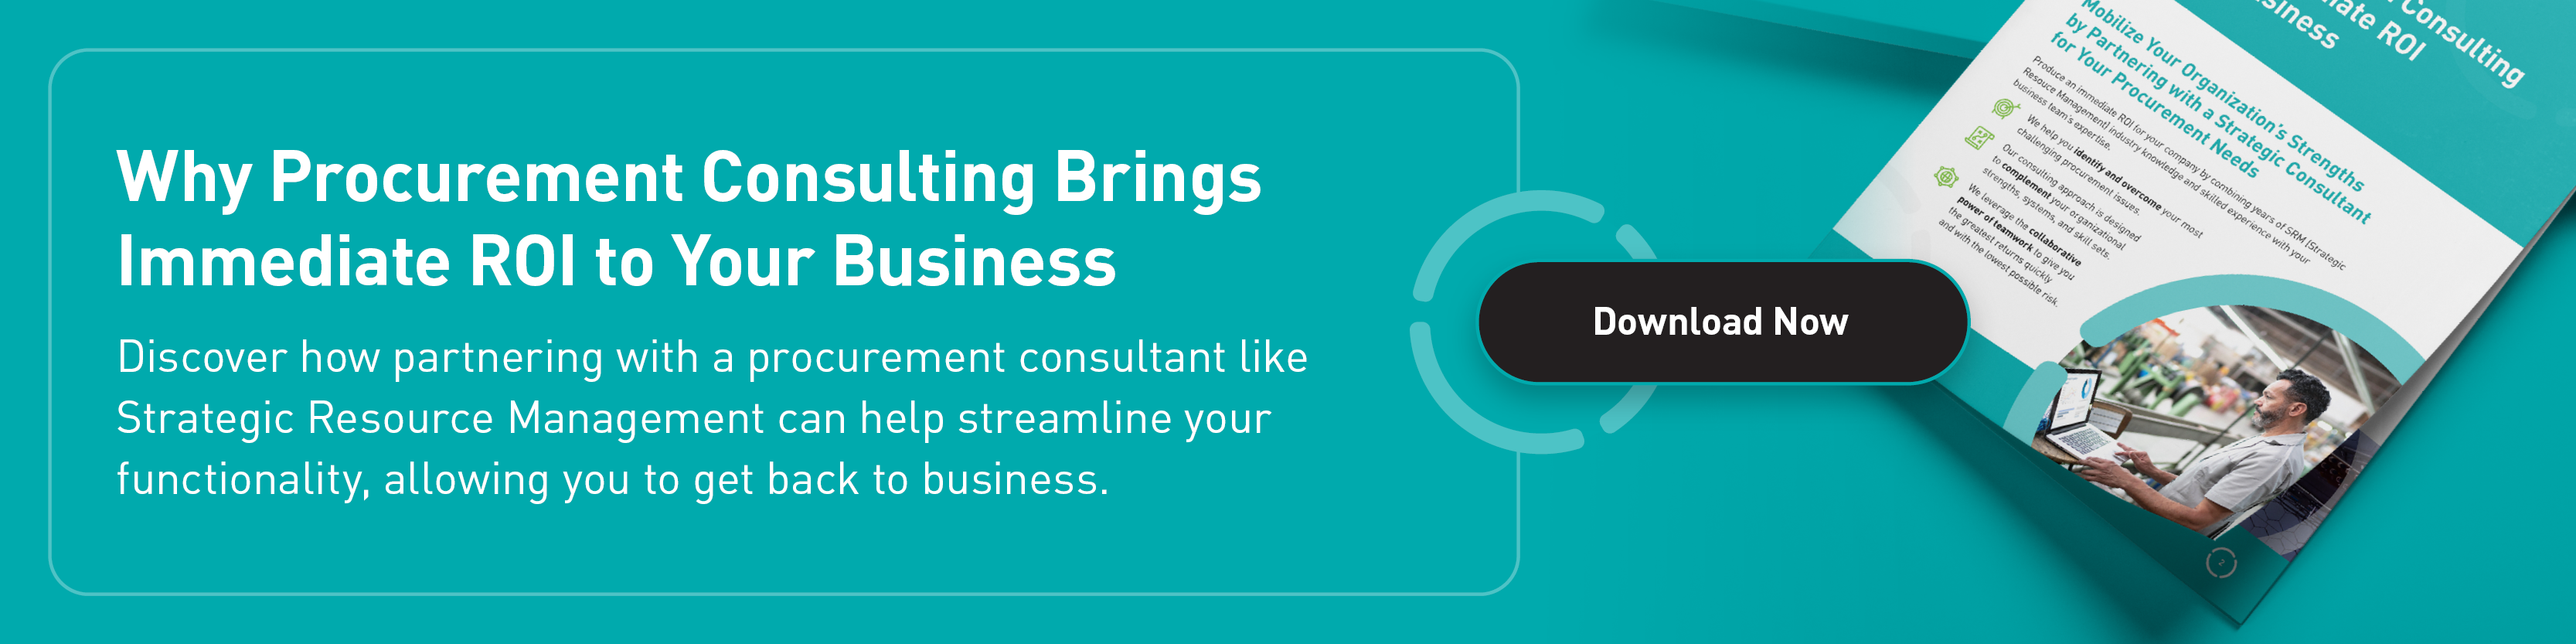 Why Procurement Consulting Brings Immediate ROI to Your Business